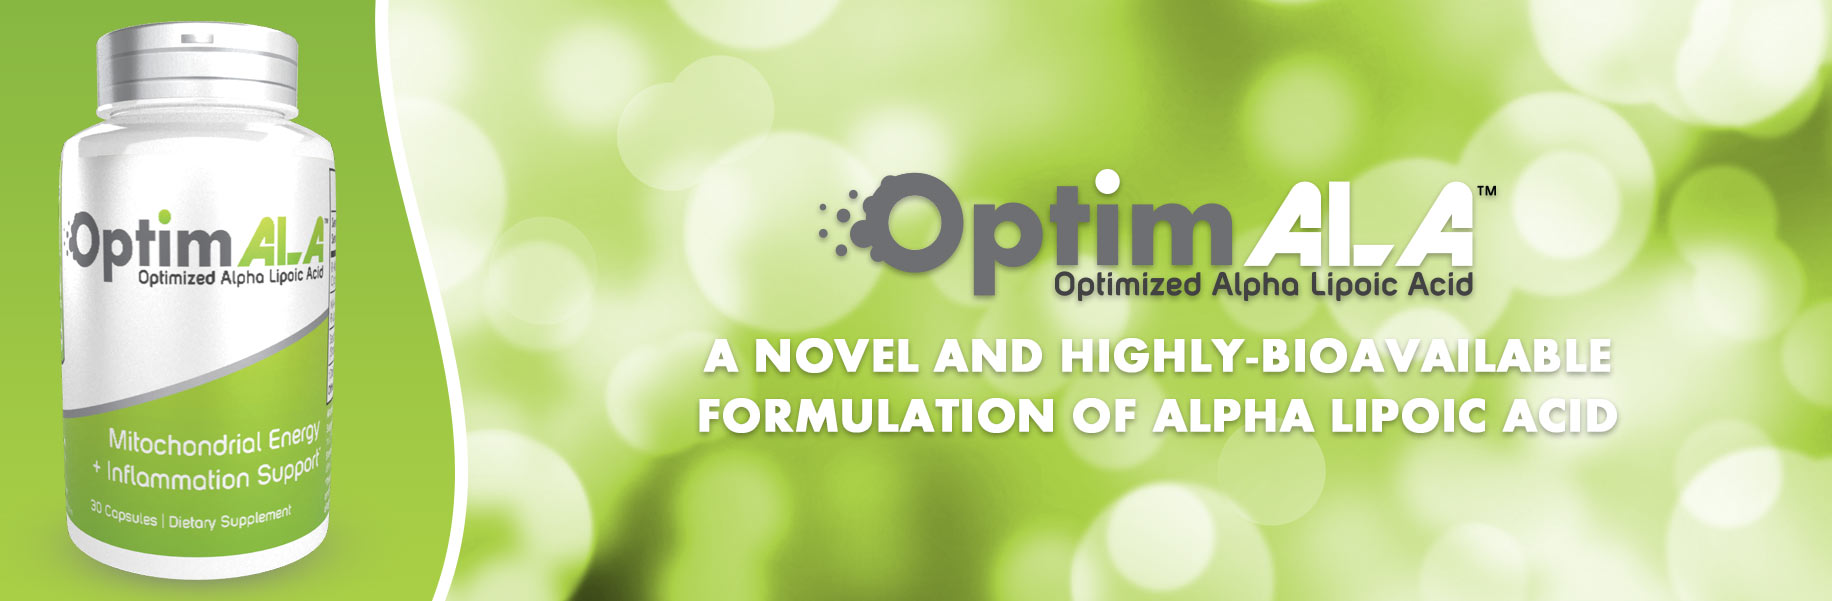 OptimALA Alpha Lipoic Acid Capsules by Natrium Health